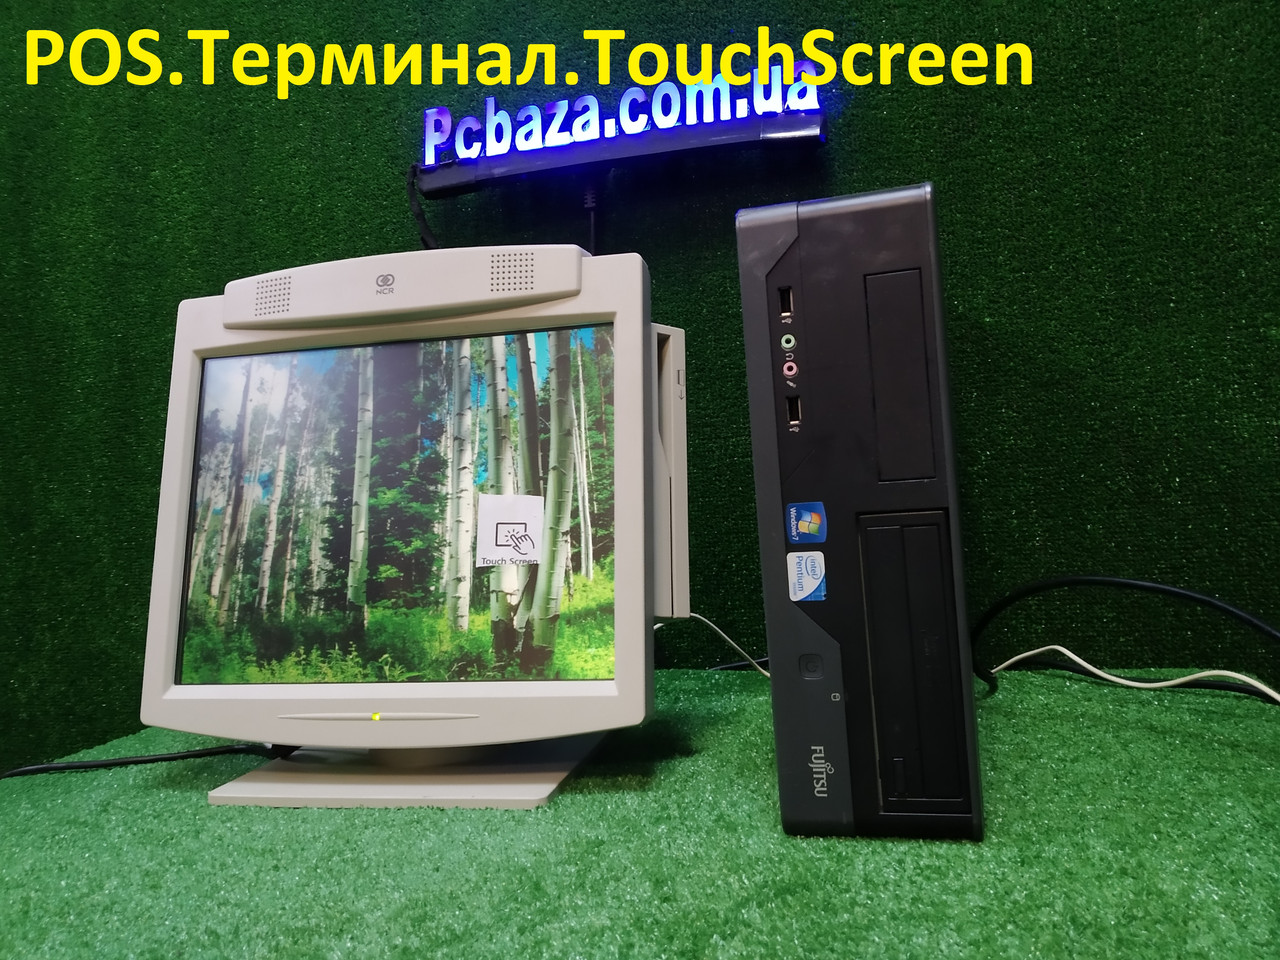 "POS Торговый терминал Fujitsu\4 ядра\4gb\ + 15"" Touchscreen"